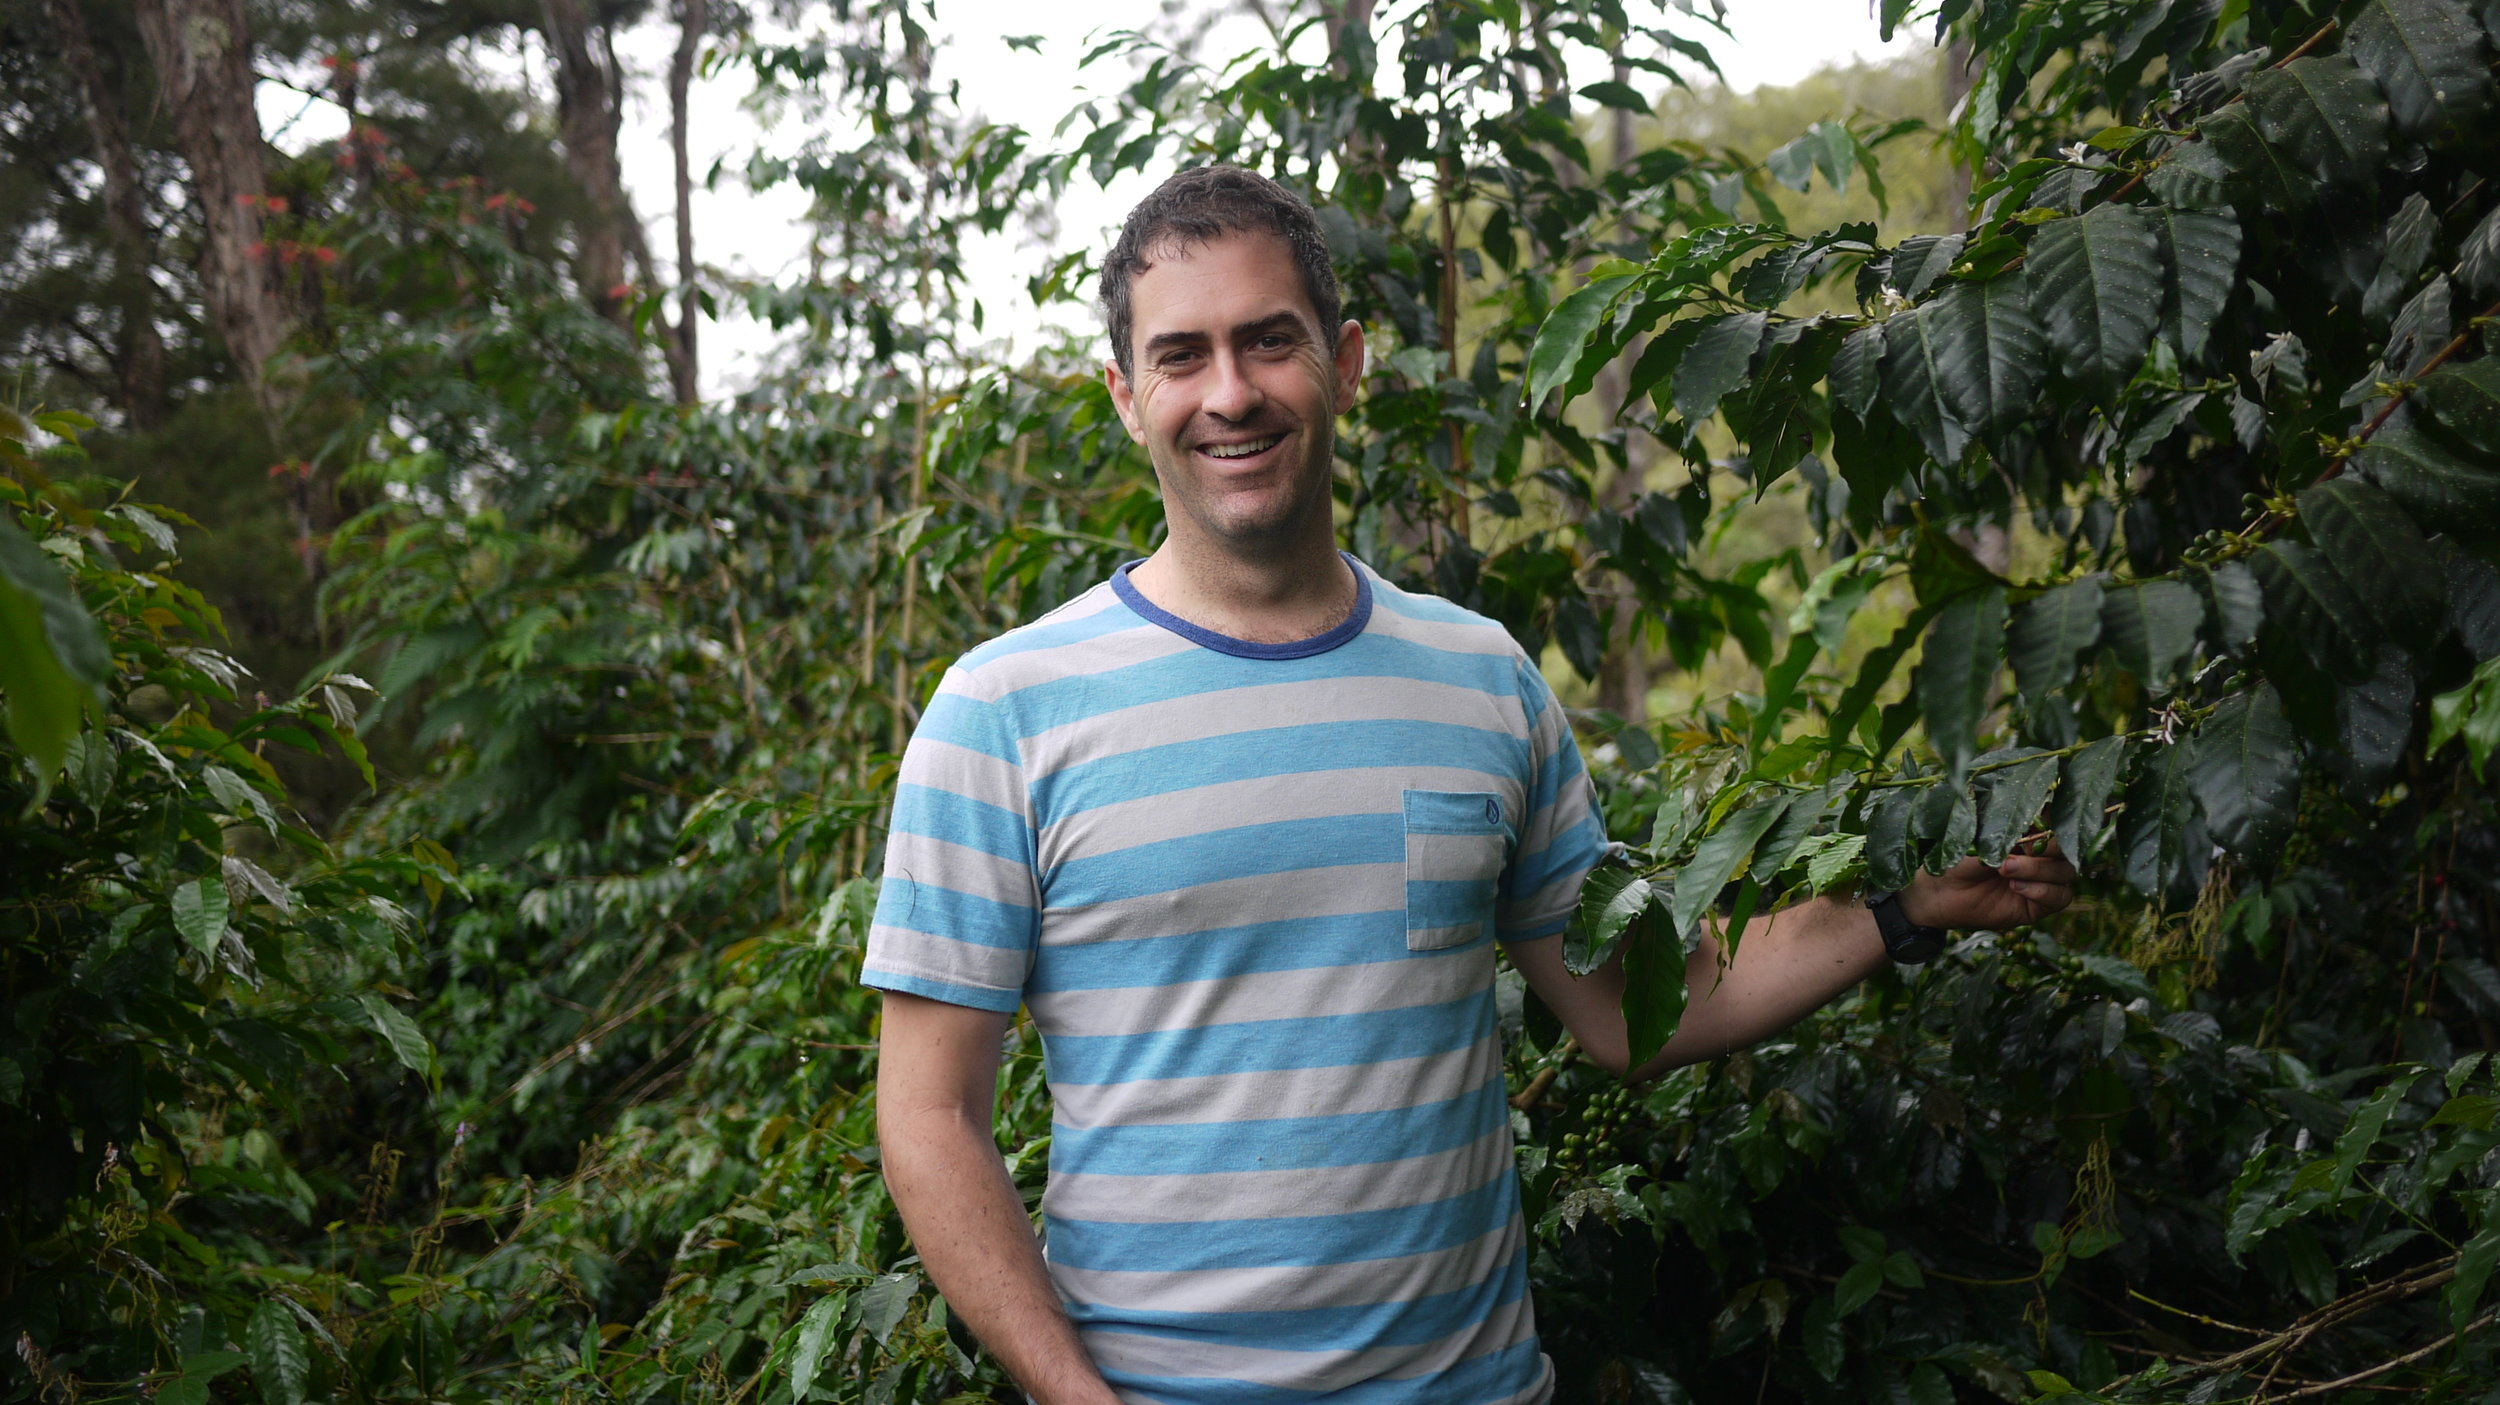 spencer coffee field.JPG